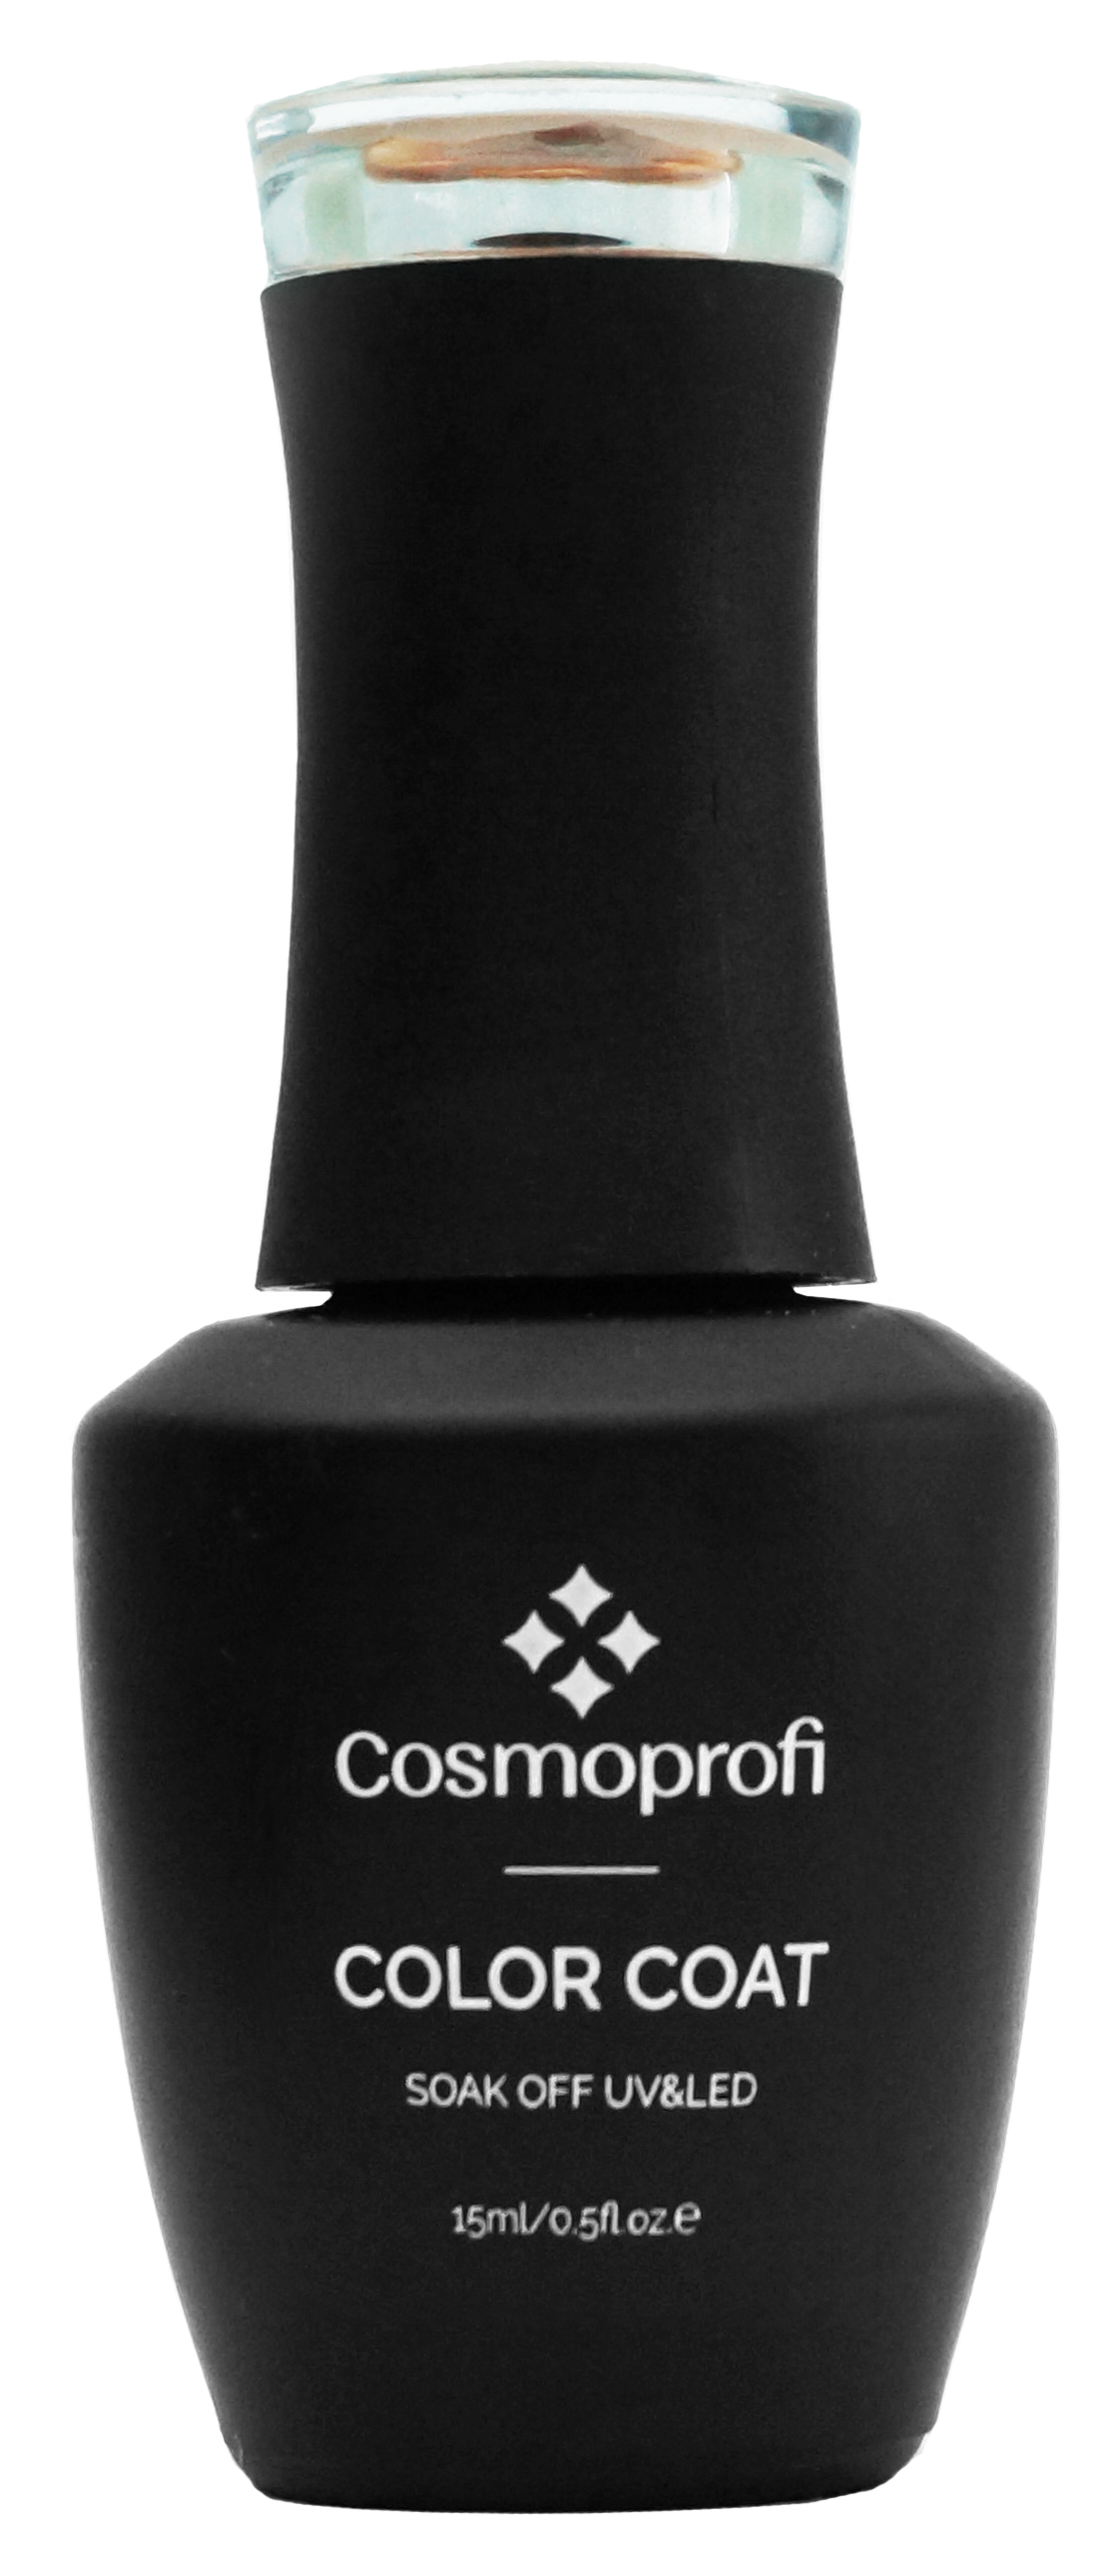 Гель-лак Cosmoprofi, Color coat № 125, 15 мл